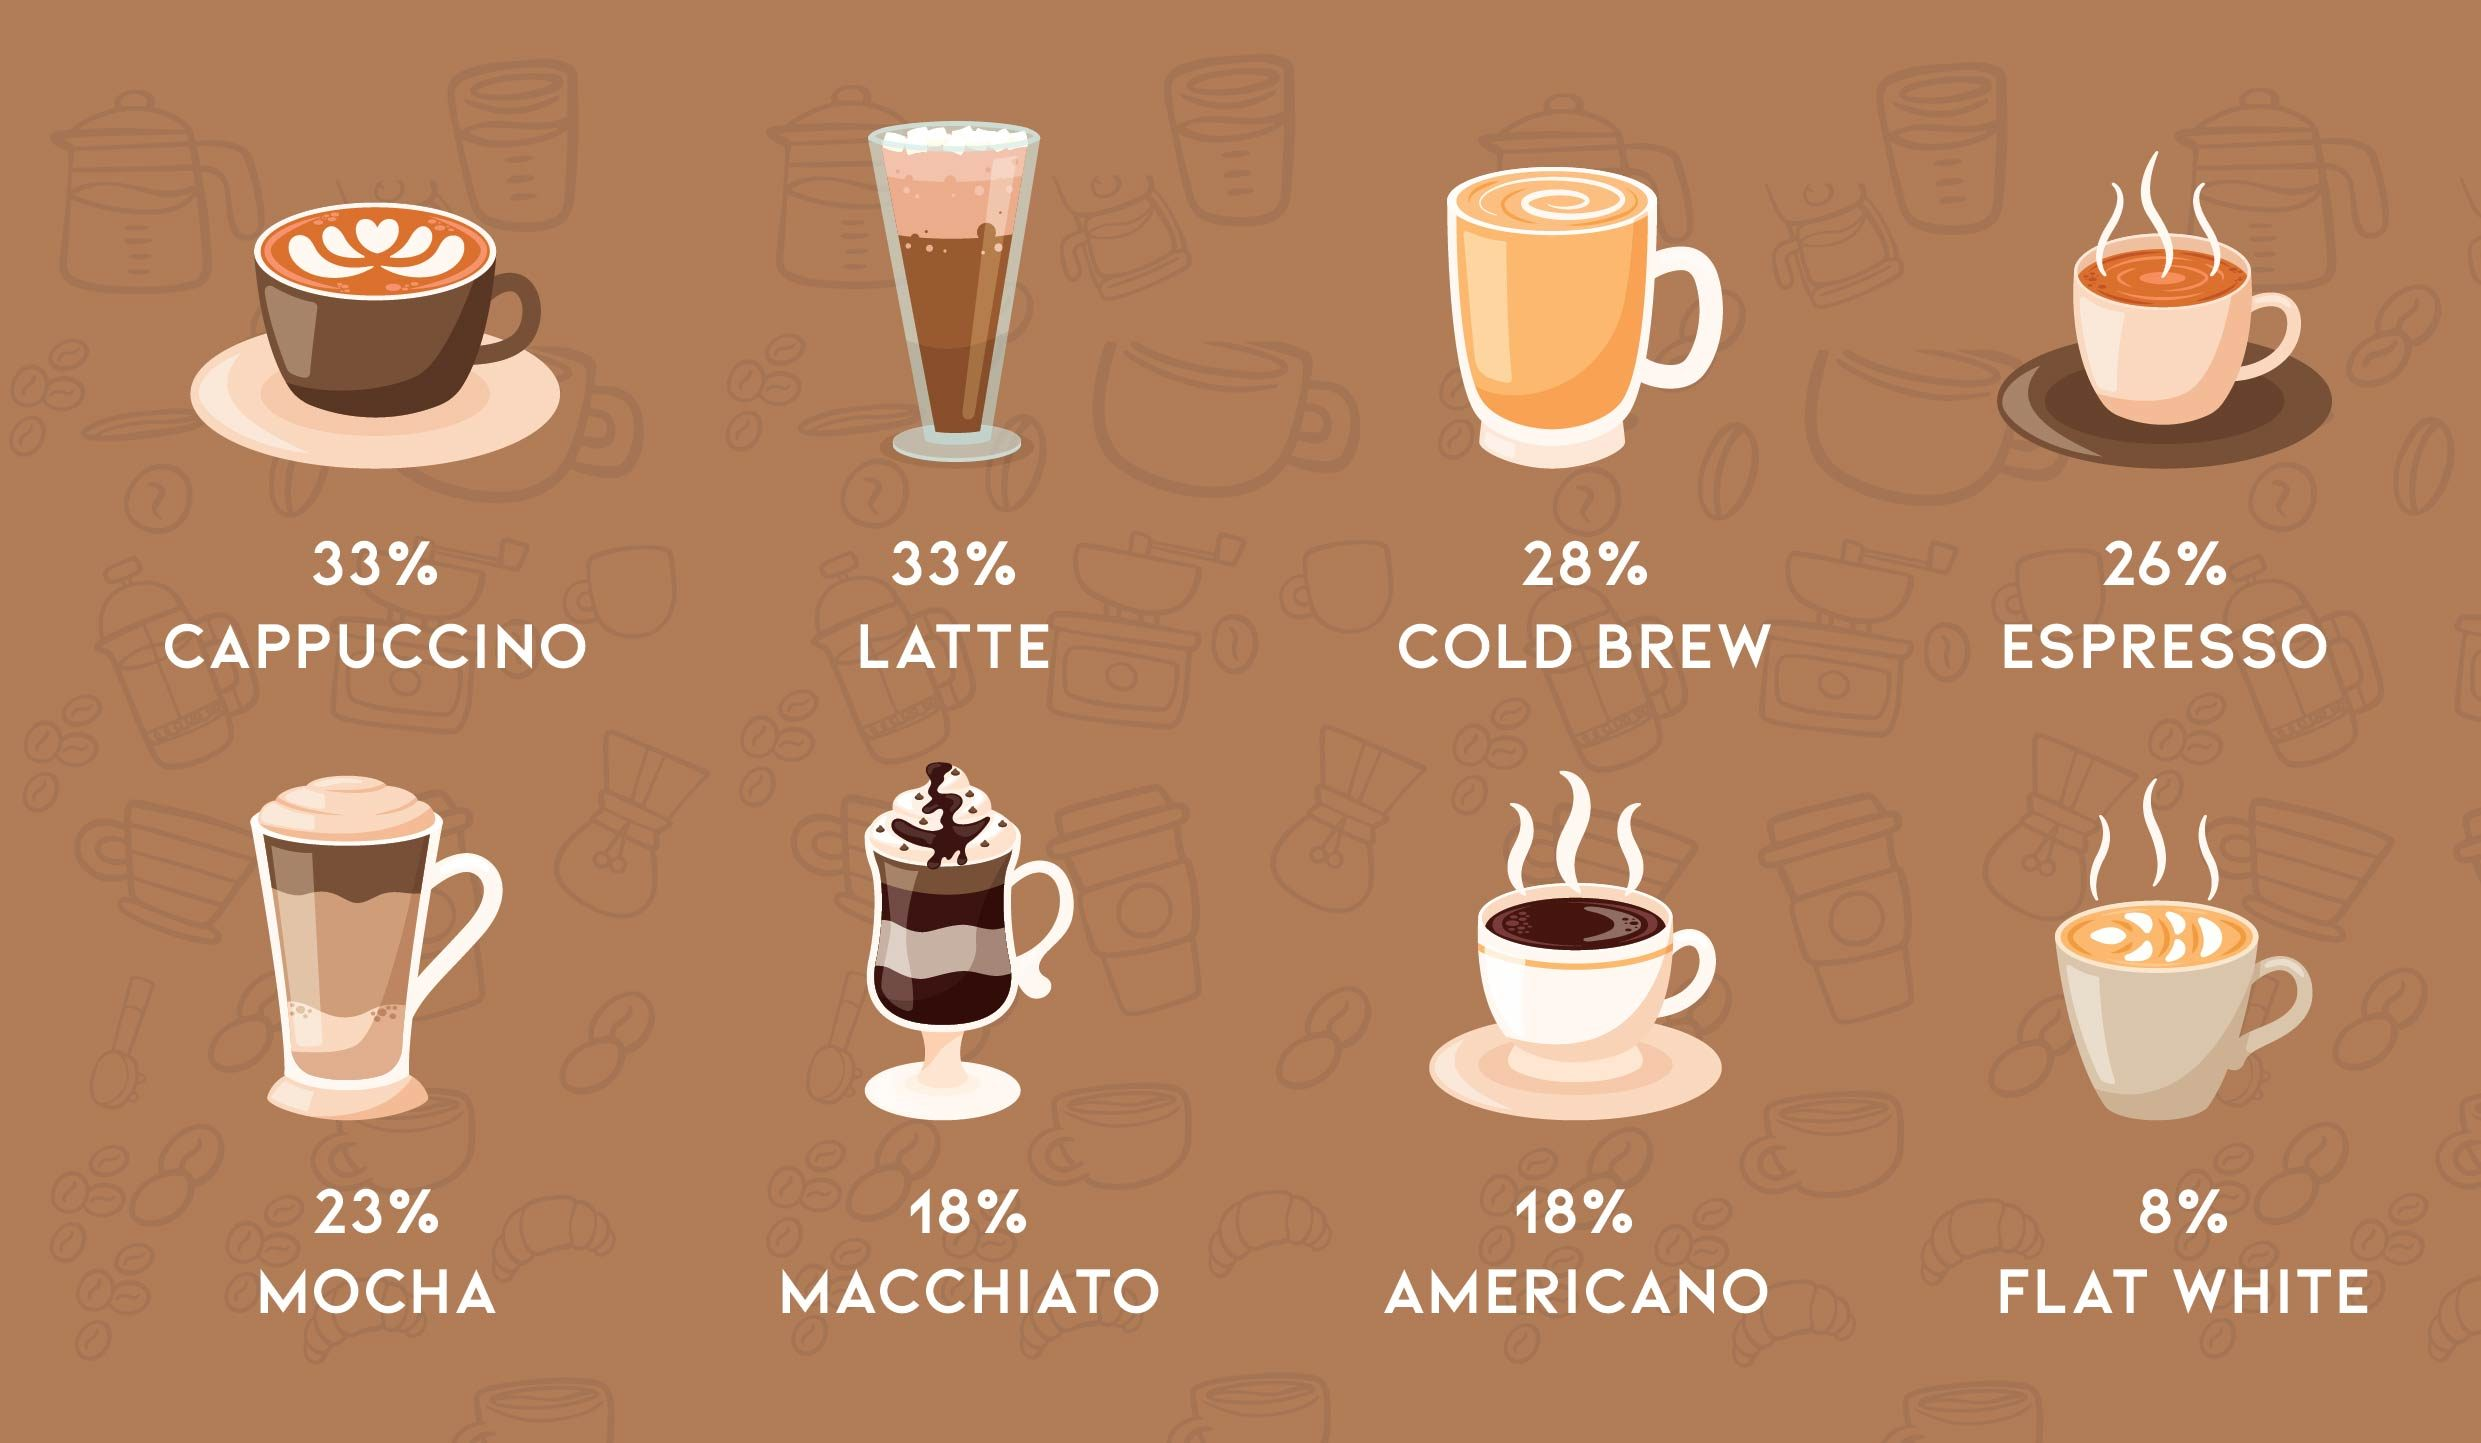 Most Consuming Espresso-based drinks